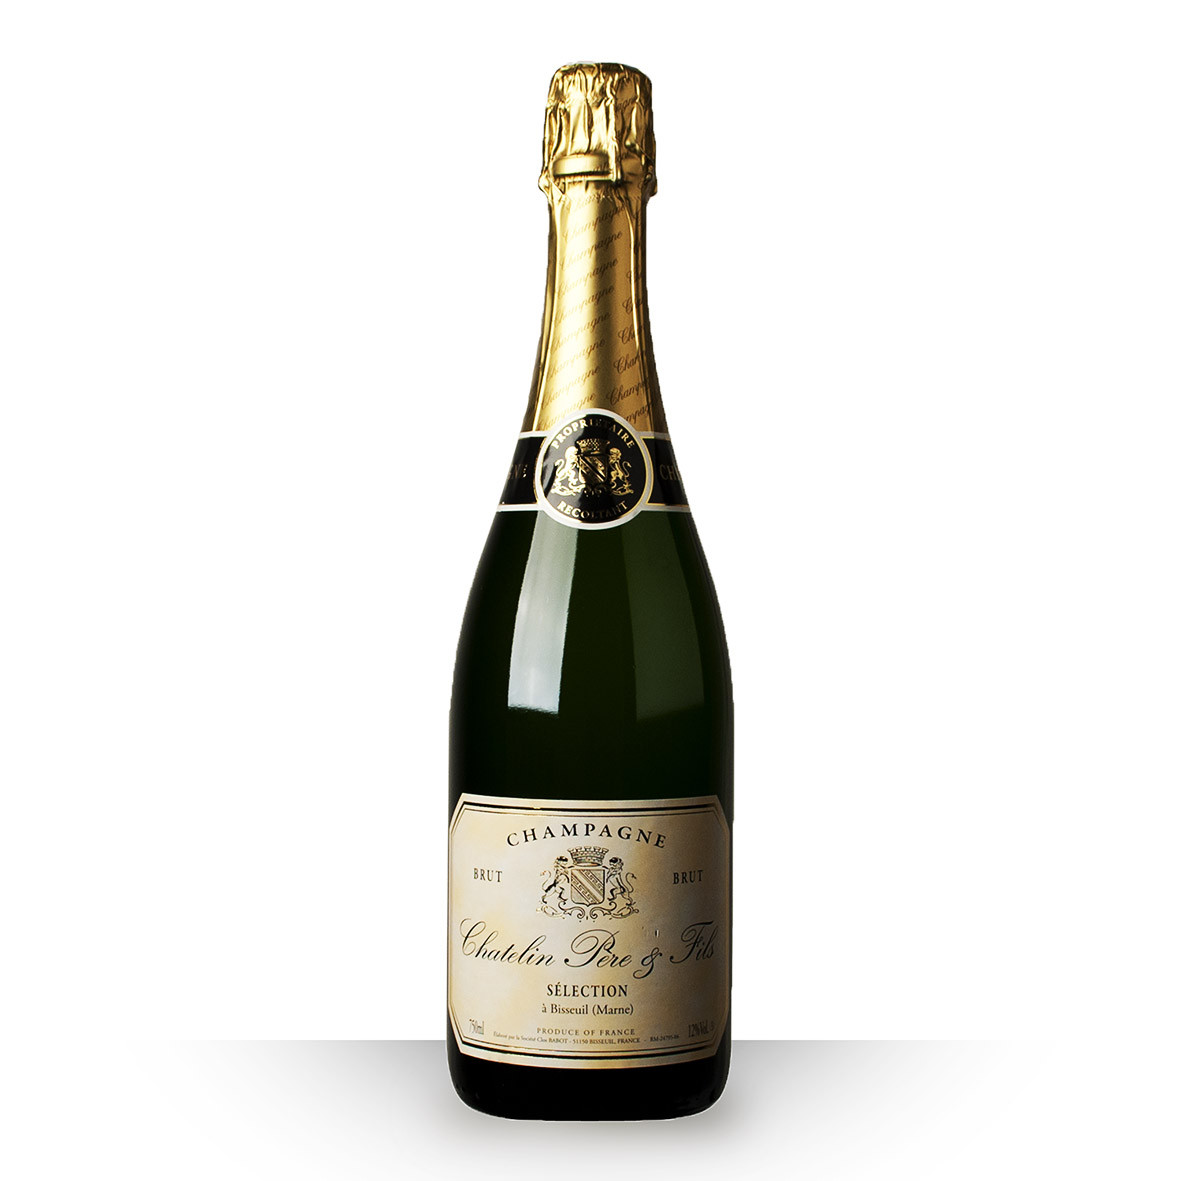 Champagne Chatelin Brut 75cl www.odyssee-vins.com